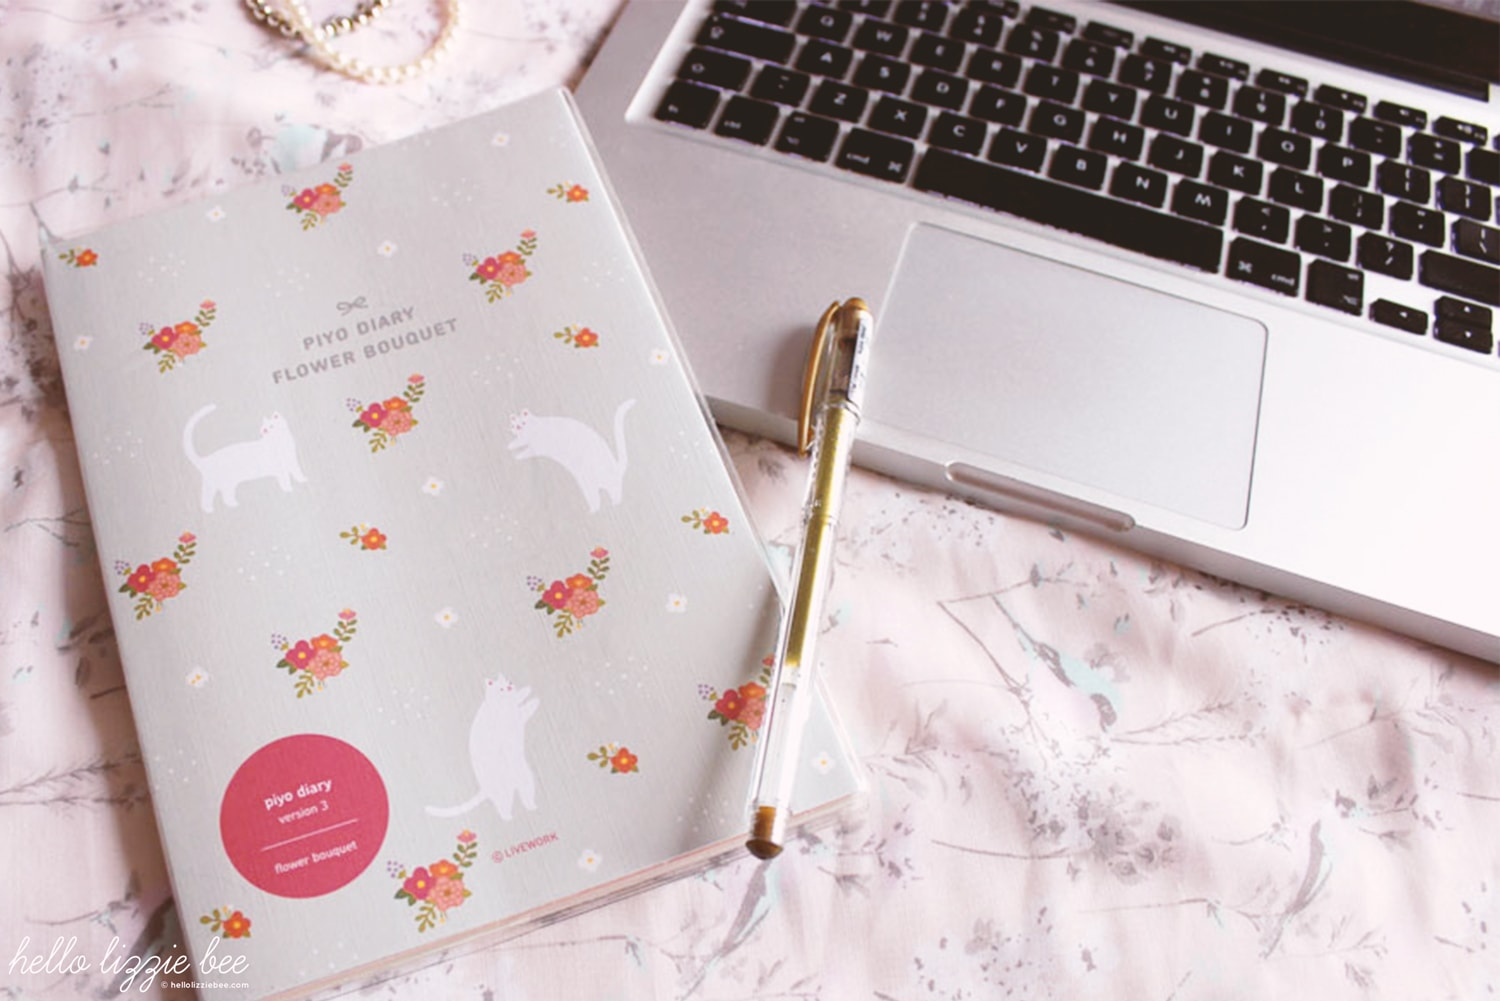 kawaii blogger, cute kitty organiser, diary